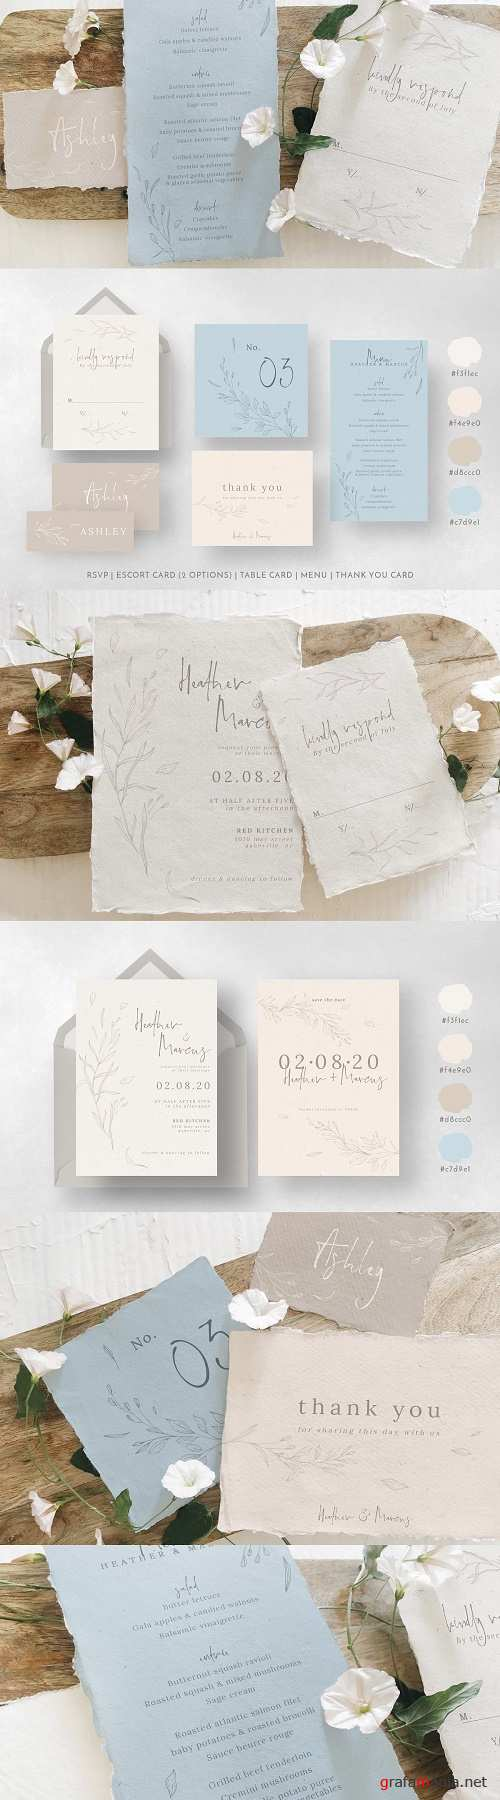 Rustic Ivory & Blue Wedding Suite - 3849807